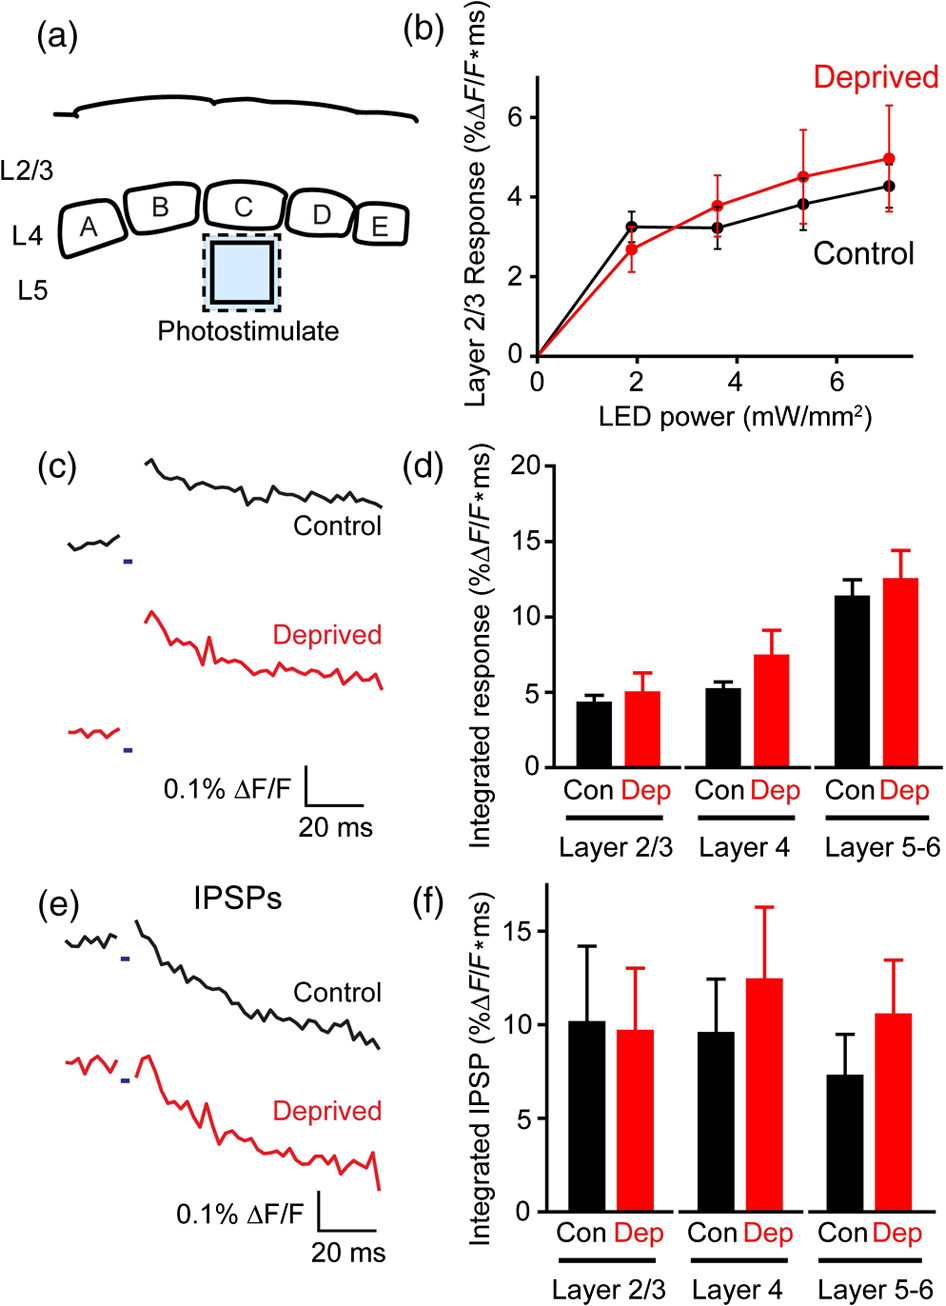 All Optical Mapping Of Barrel Cortex Circuits Based On Simultaneous Led Light Organ Circuit Diagram Lab Integrated Compound Ipsp Responses At Various Layers Were From 118 To 514 Ms After The Onset Flash